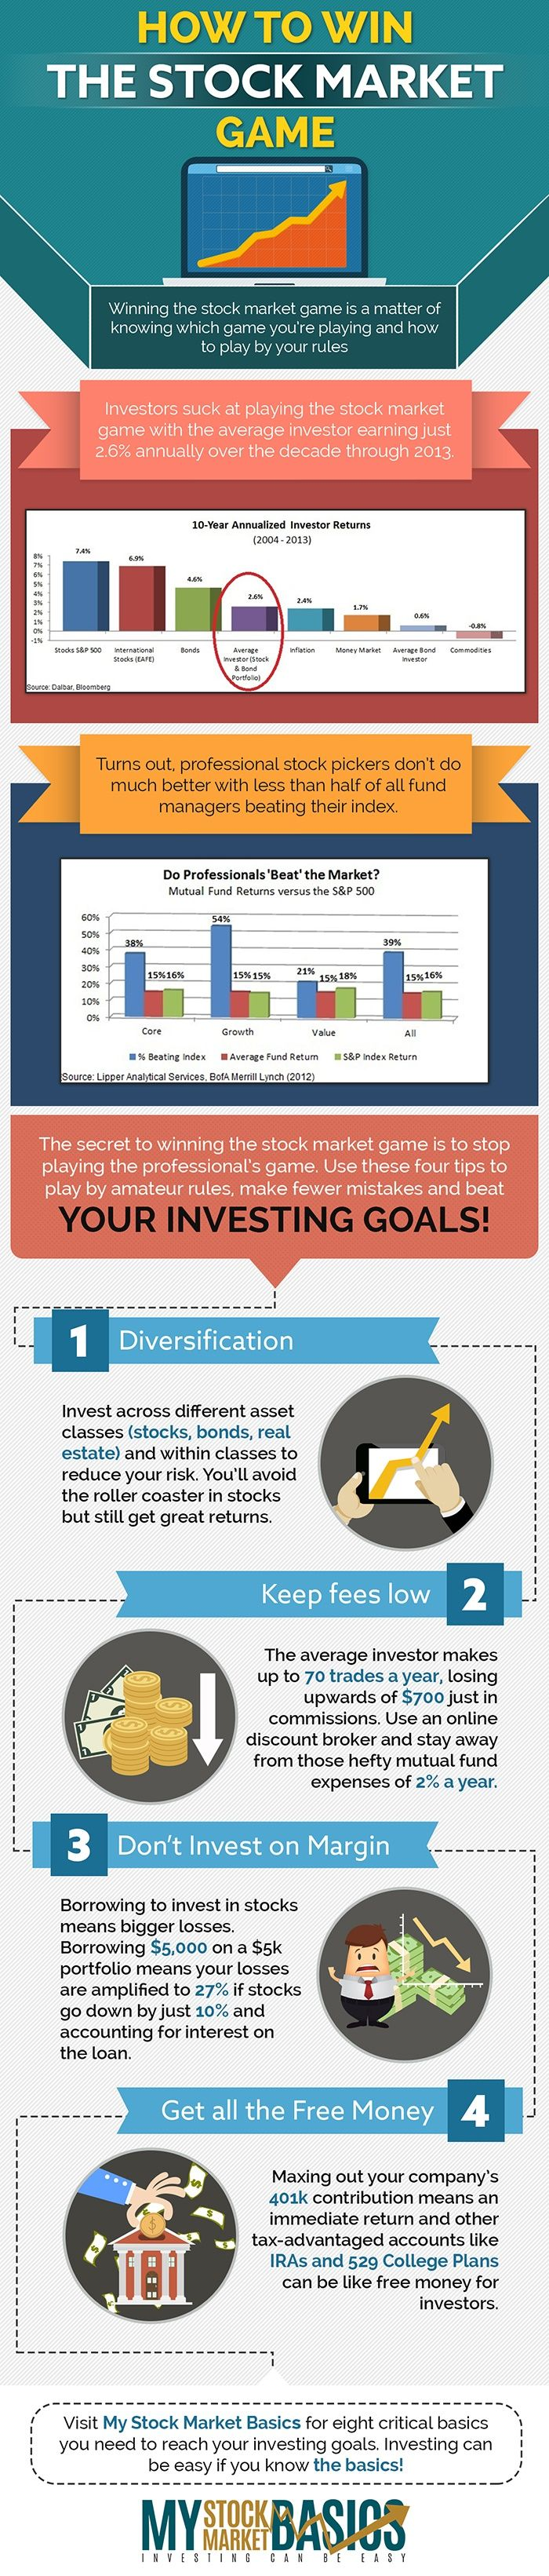 Love this infographic about smart investing and beating the stock market game. Four easy to follow investing rules and how to make money in stocks.